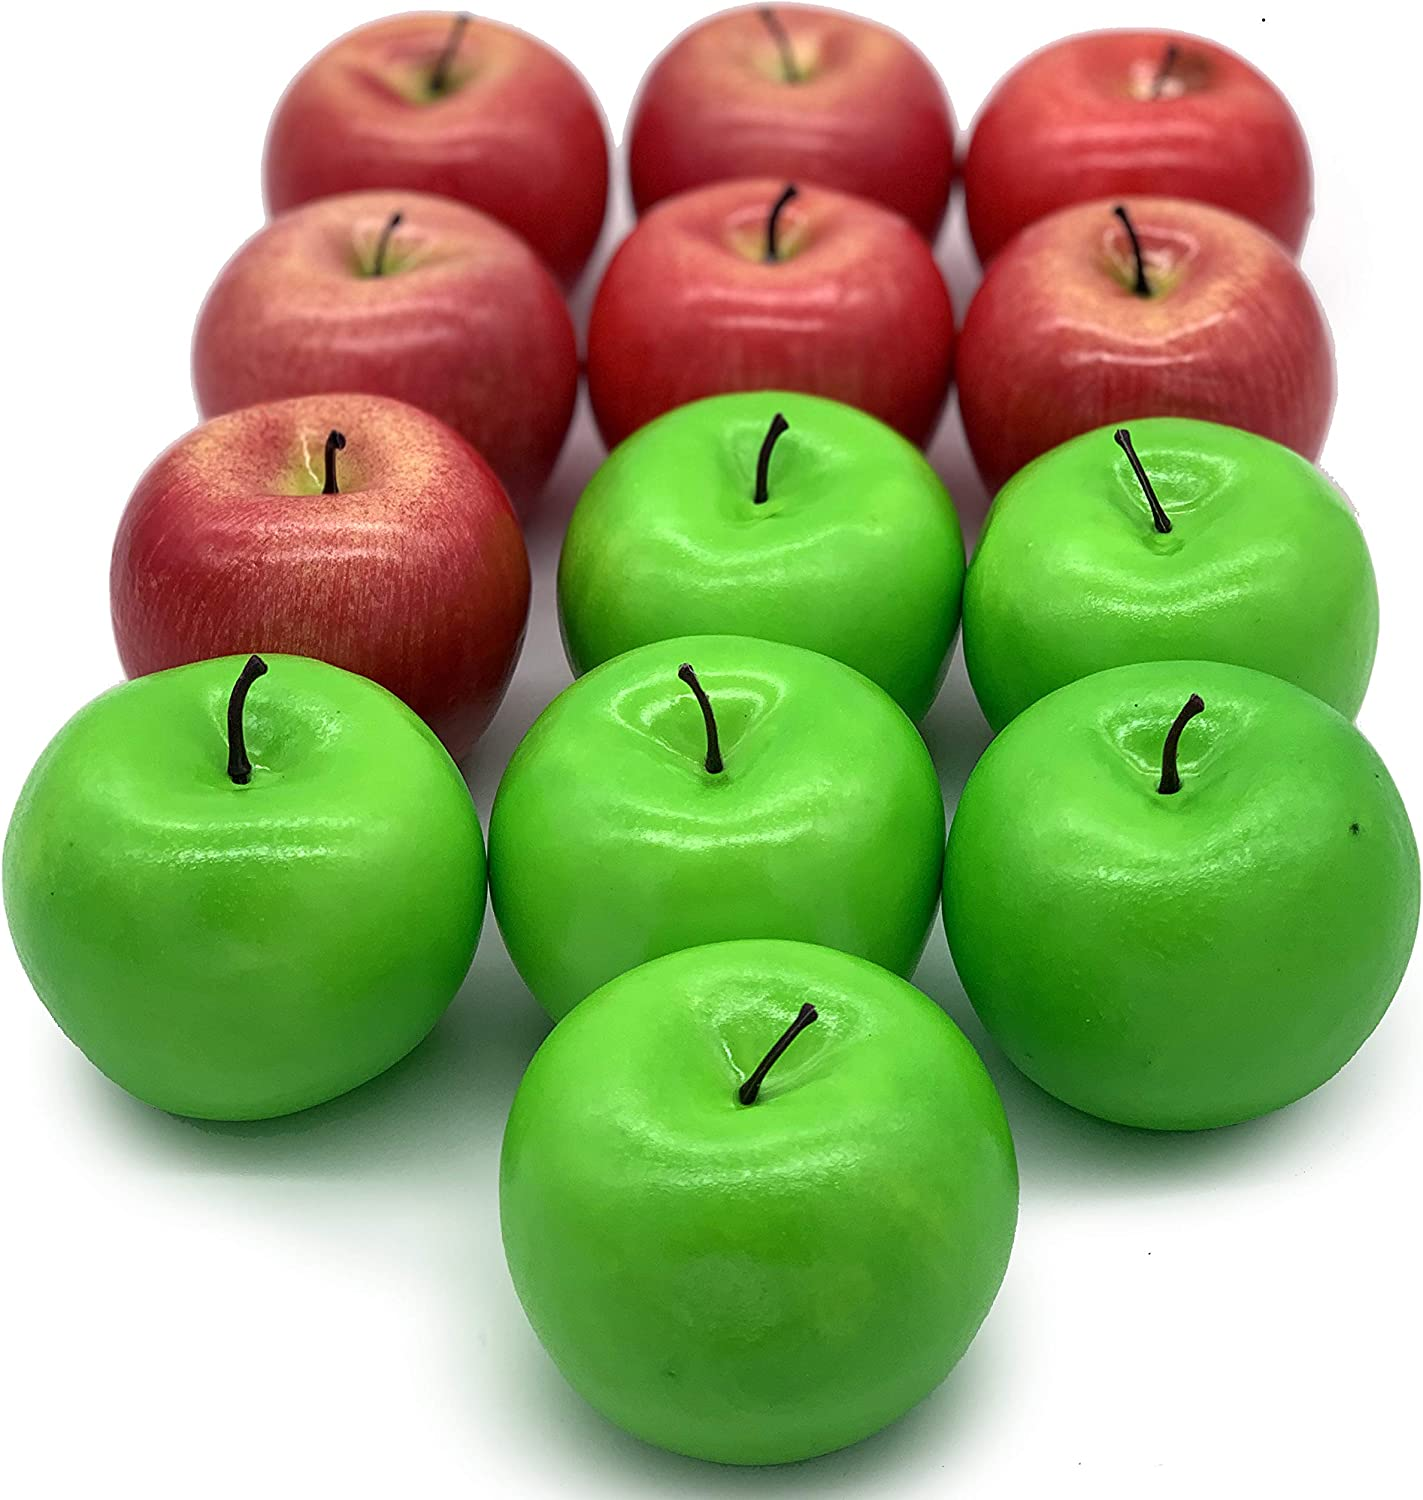 Dasksha Realistic Fake Apples - 13 PCS - 7 Red Apples and 6 Green Apples - Fake Fruits for Decoration